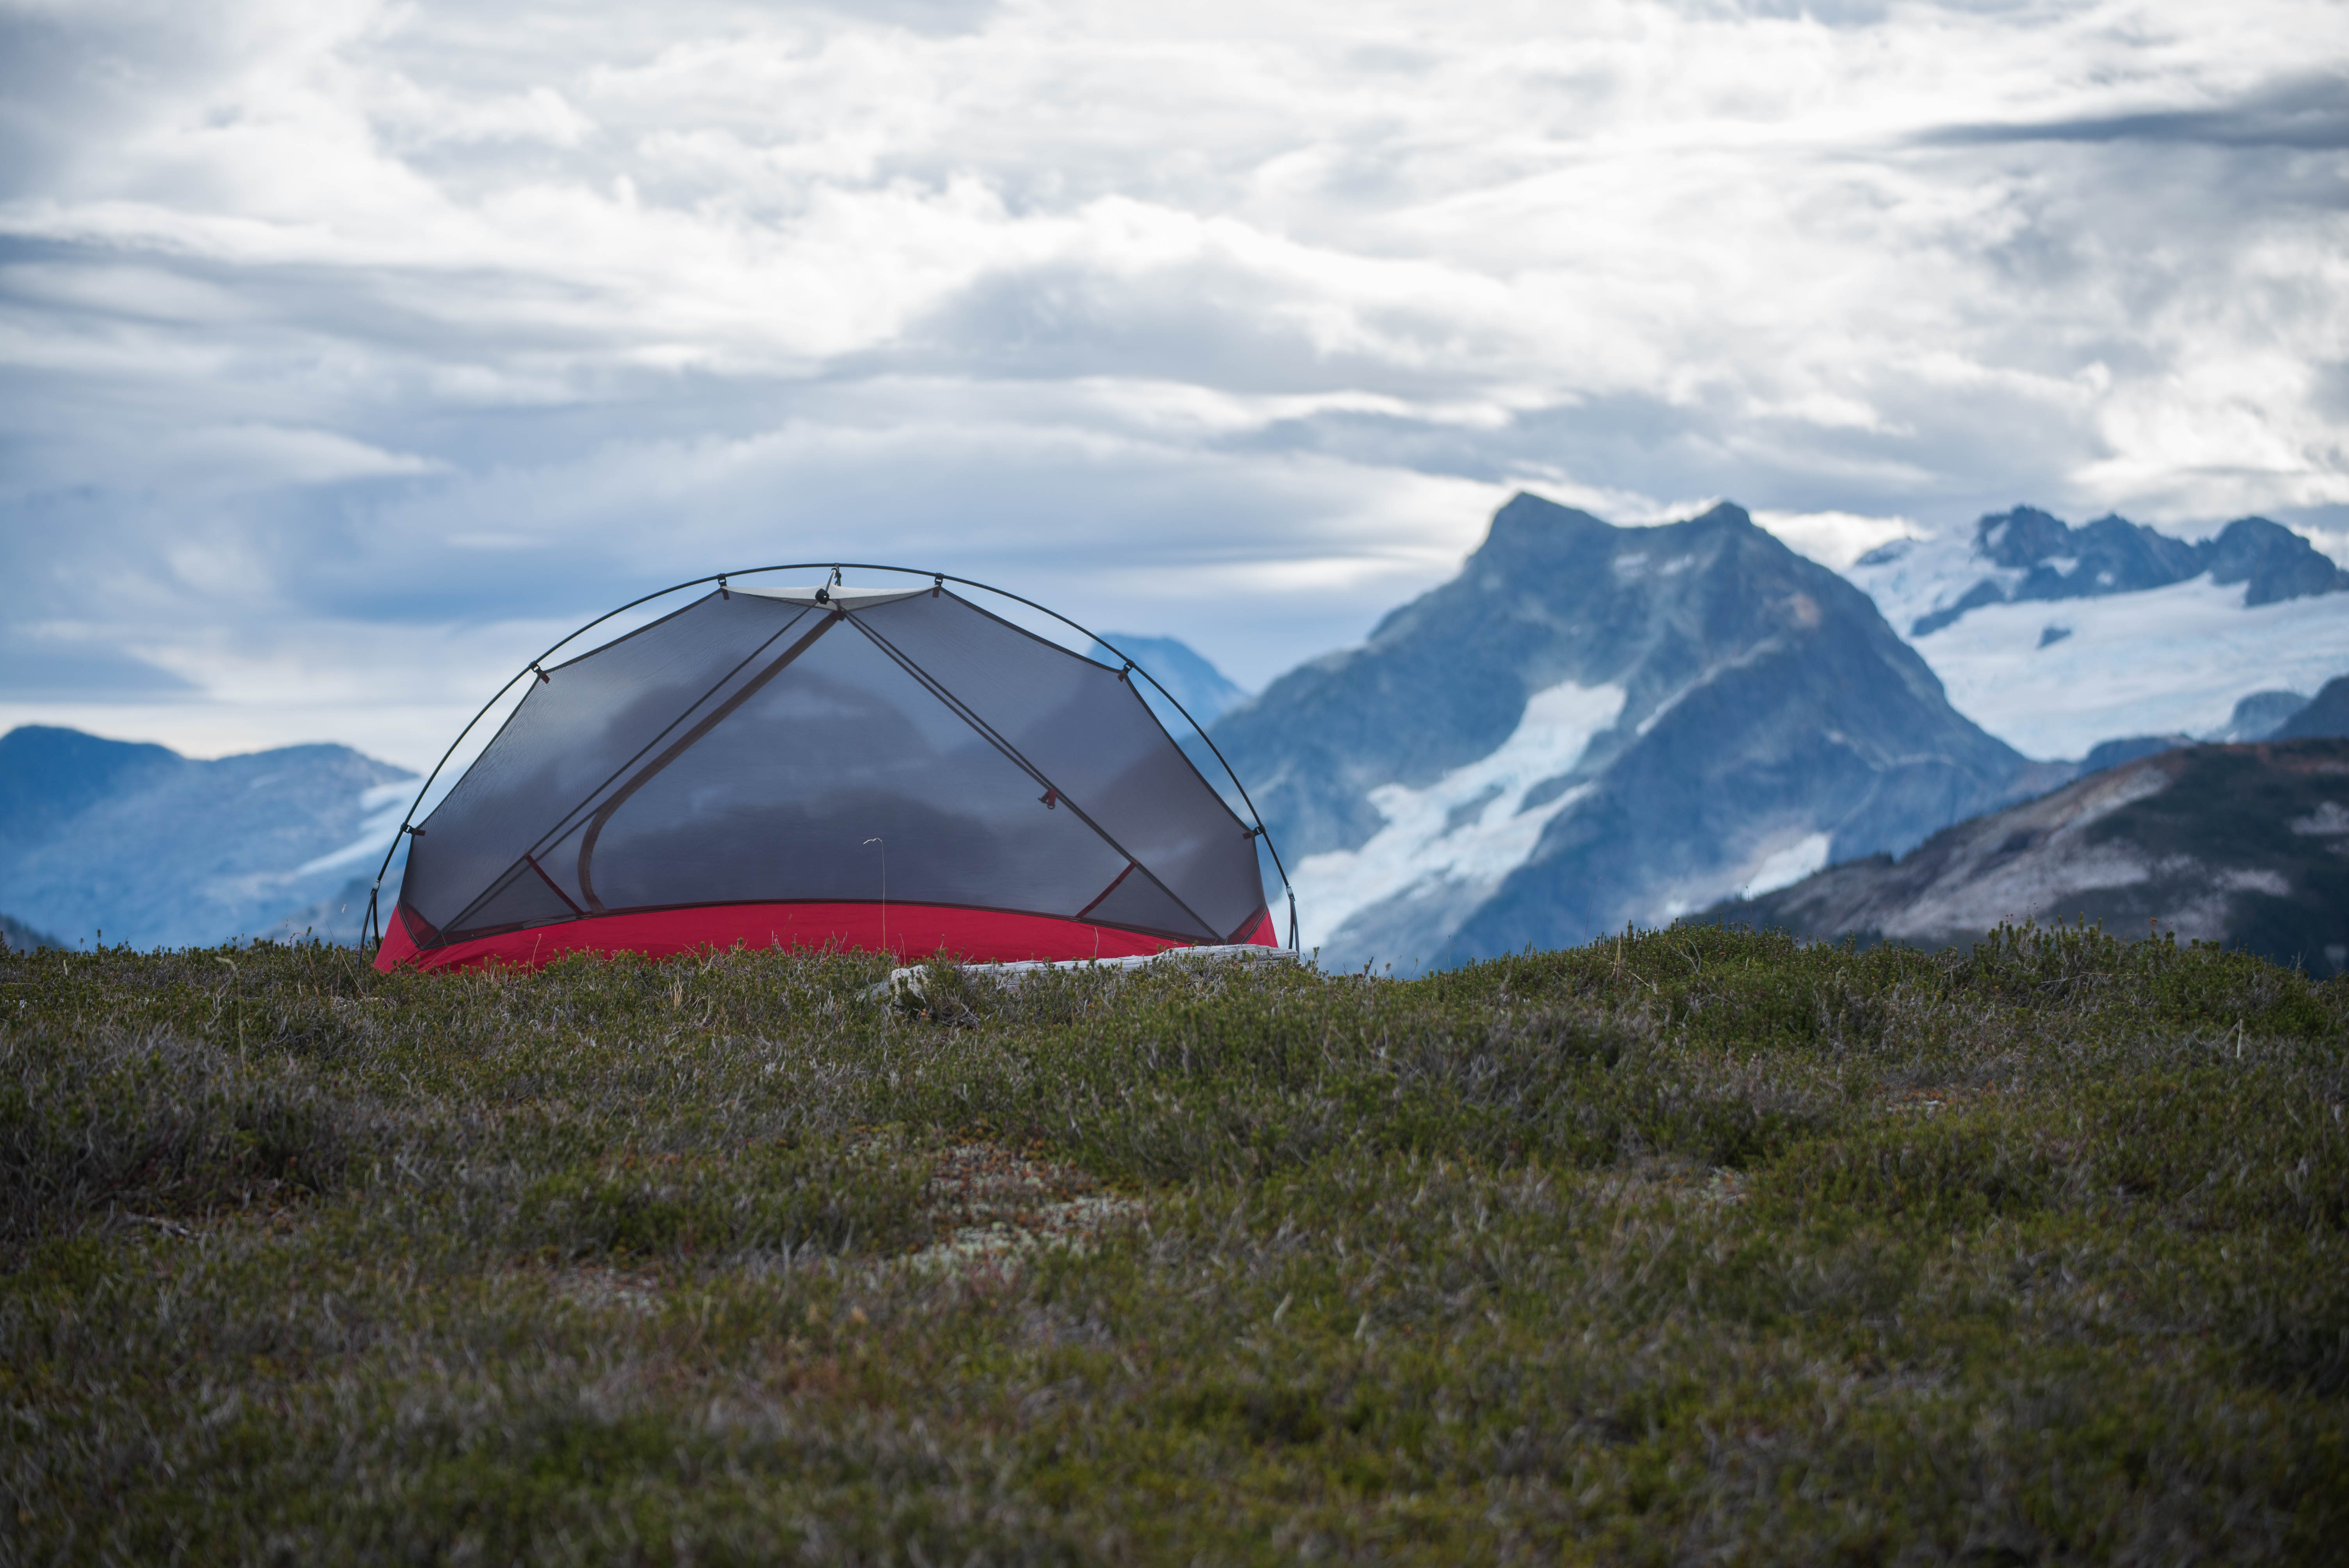 Free stock photo of camping, mountains, tent